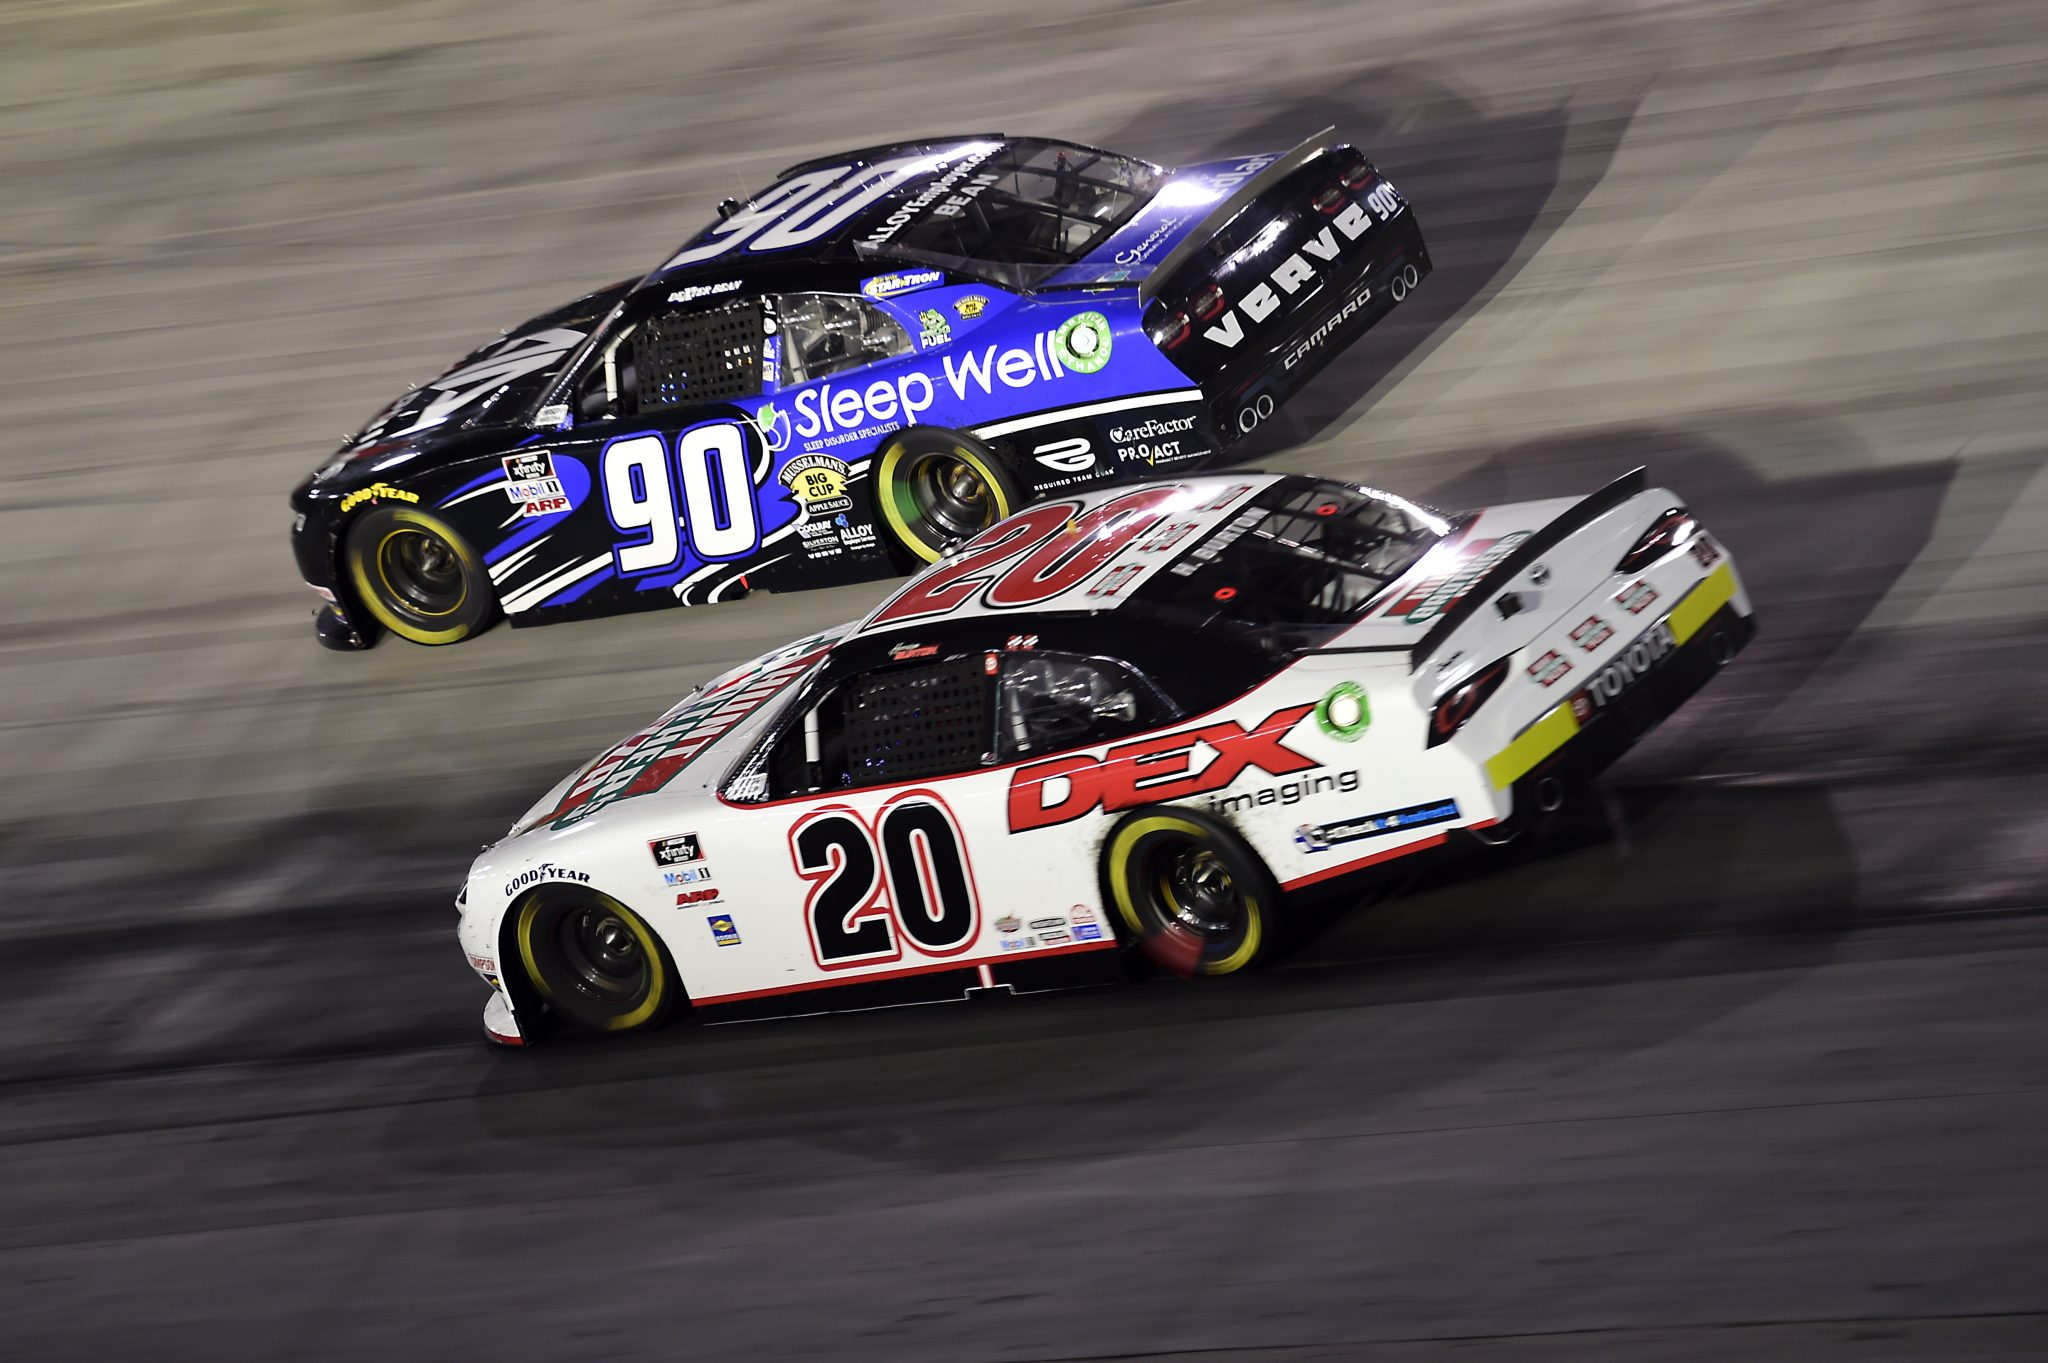 BRISTOL, TENNESSEE - SEPTEMBER 18: Harrison Burton, driver of the #20 Hunt Brothers Pizza/DEX Imaging Toyota, and Dexter Bean, driver of the #90 Sleep Well/Alpha Prime Chevrolet, race during the NASCAR Xfinity Series Food City 300 at Bristol Motor Speedway on September 18, 2020 in Bristol, Tennessee. (Photo by Jared C. Tilton/Getty Images) | Getty Images